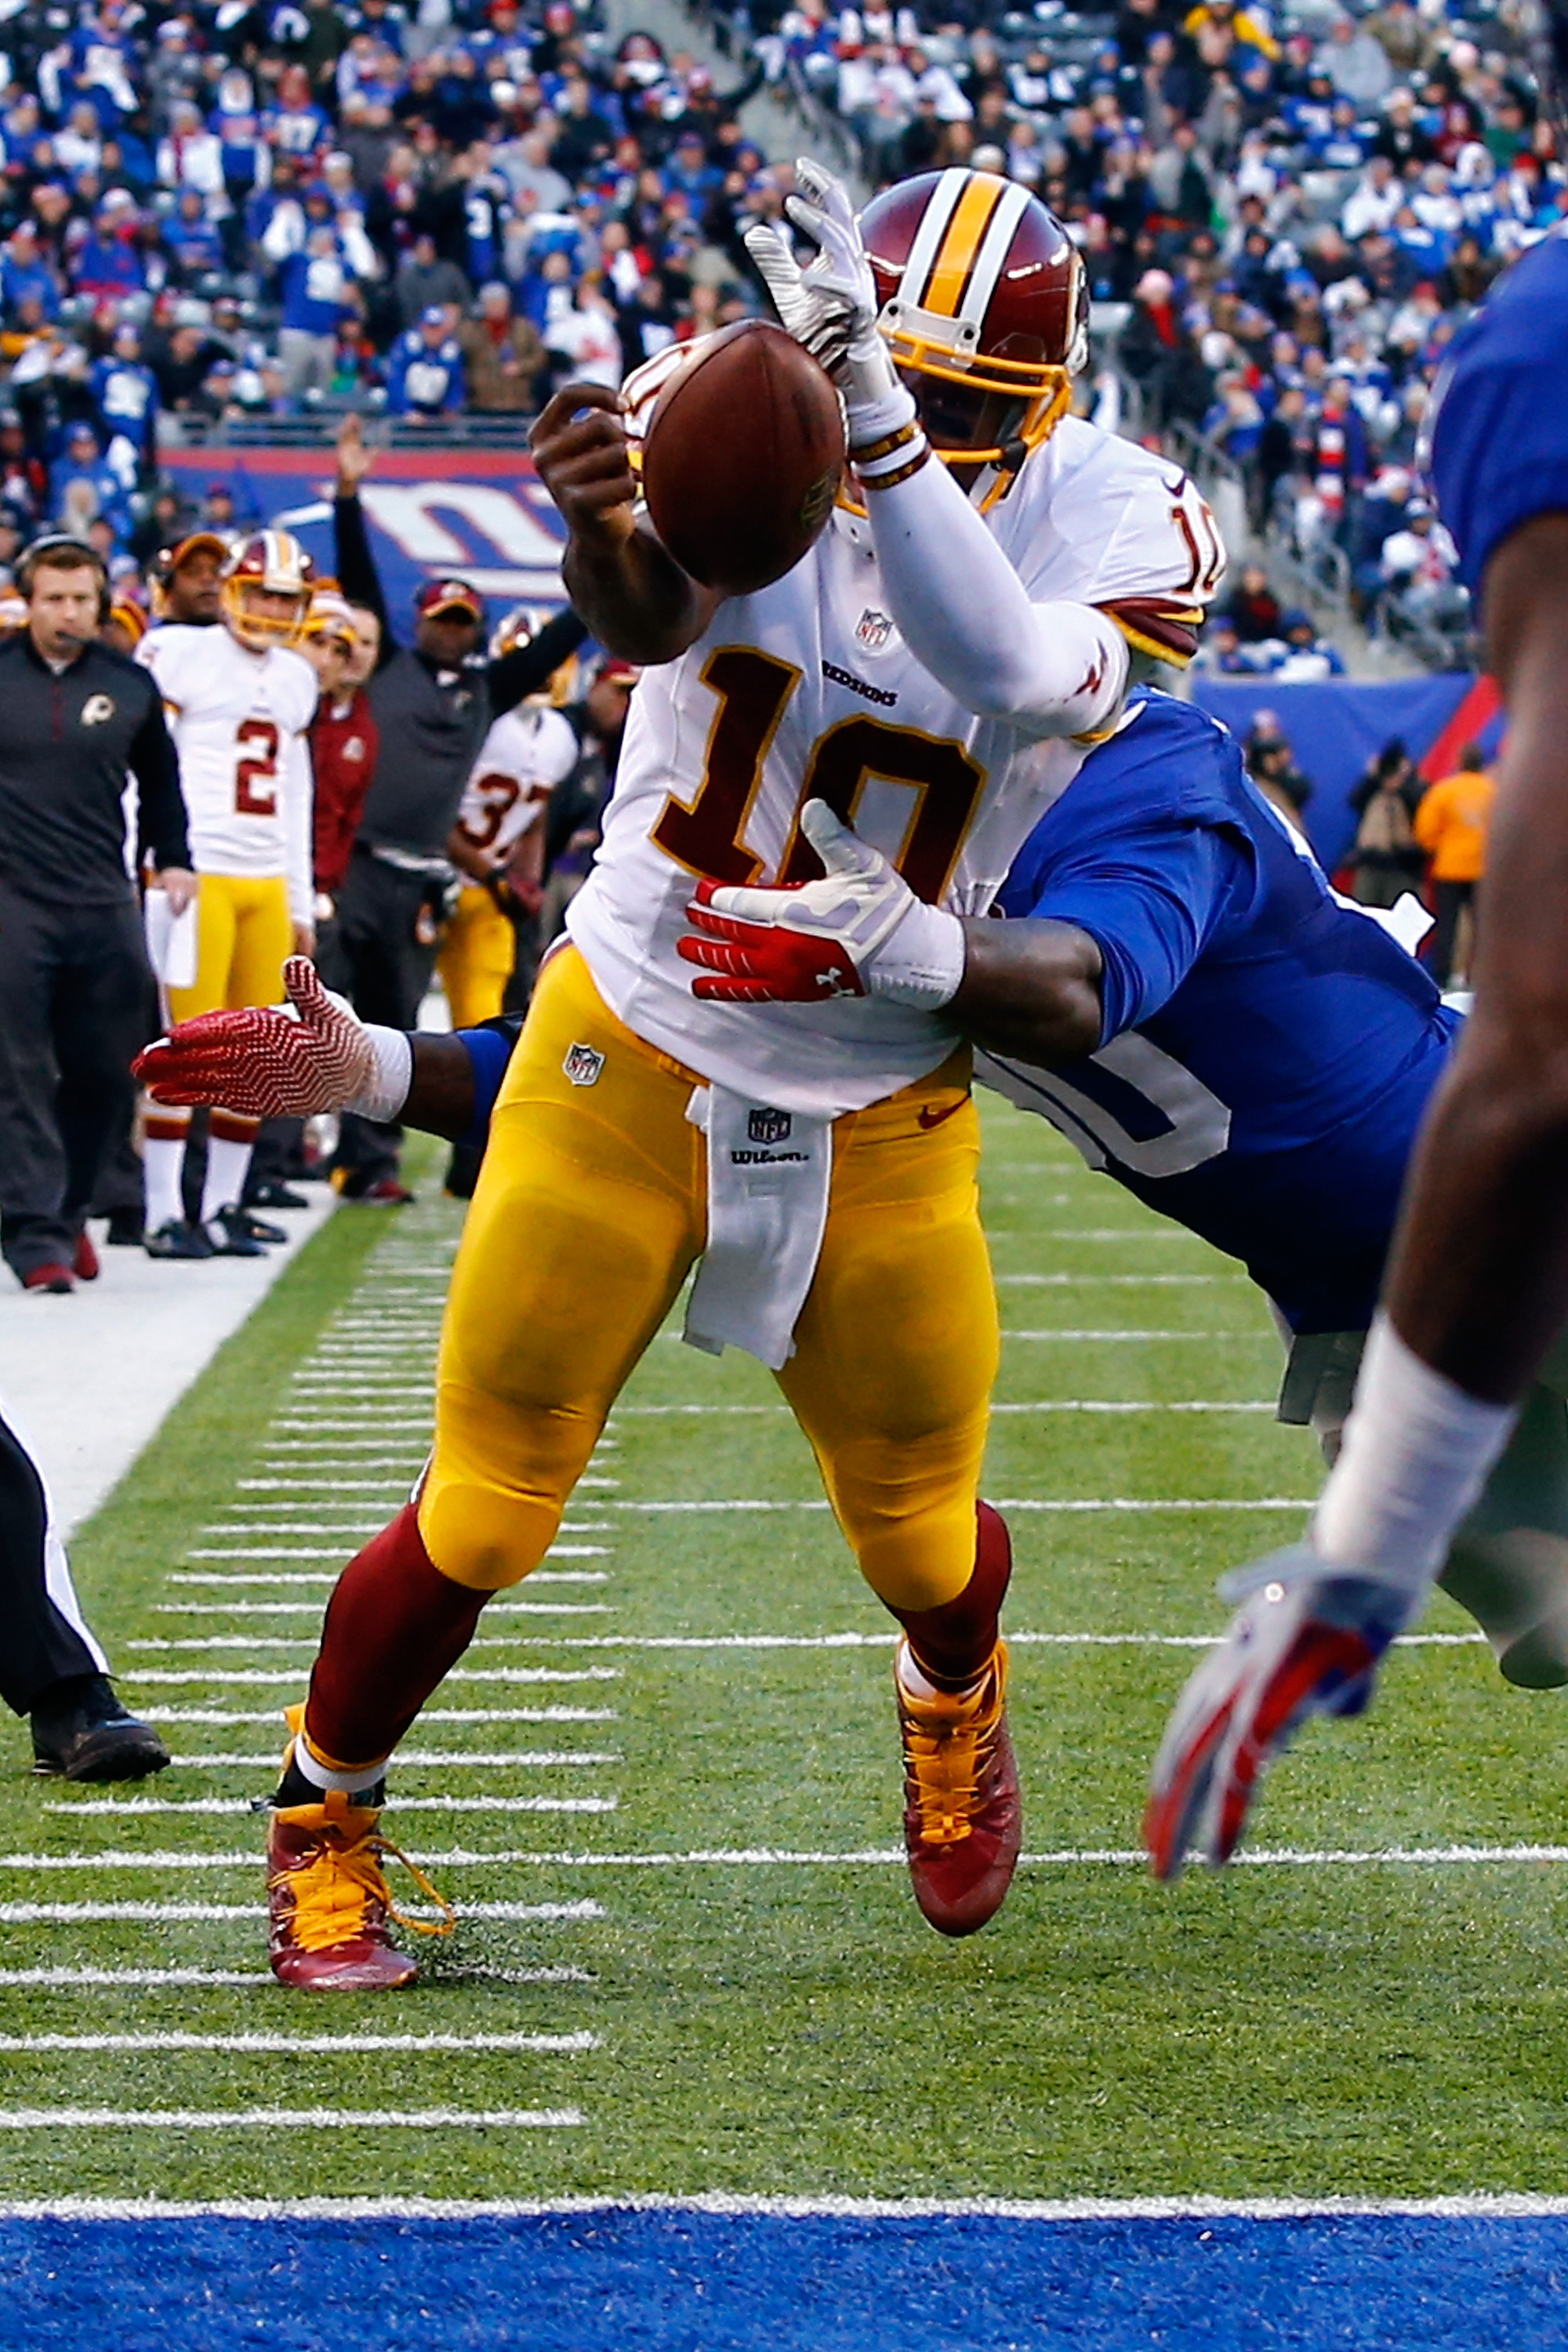 Robert Griffin III loses control of the ball as he cross the goal line